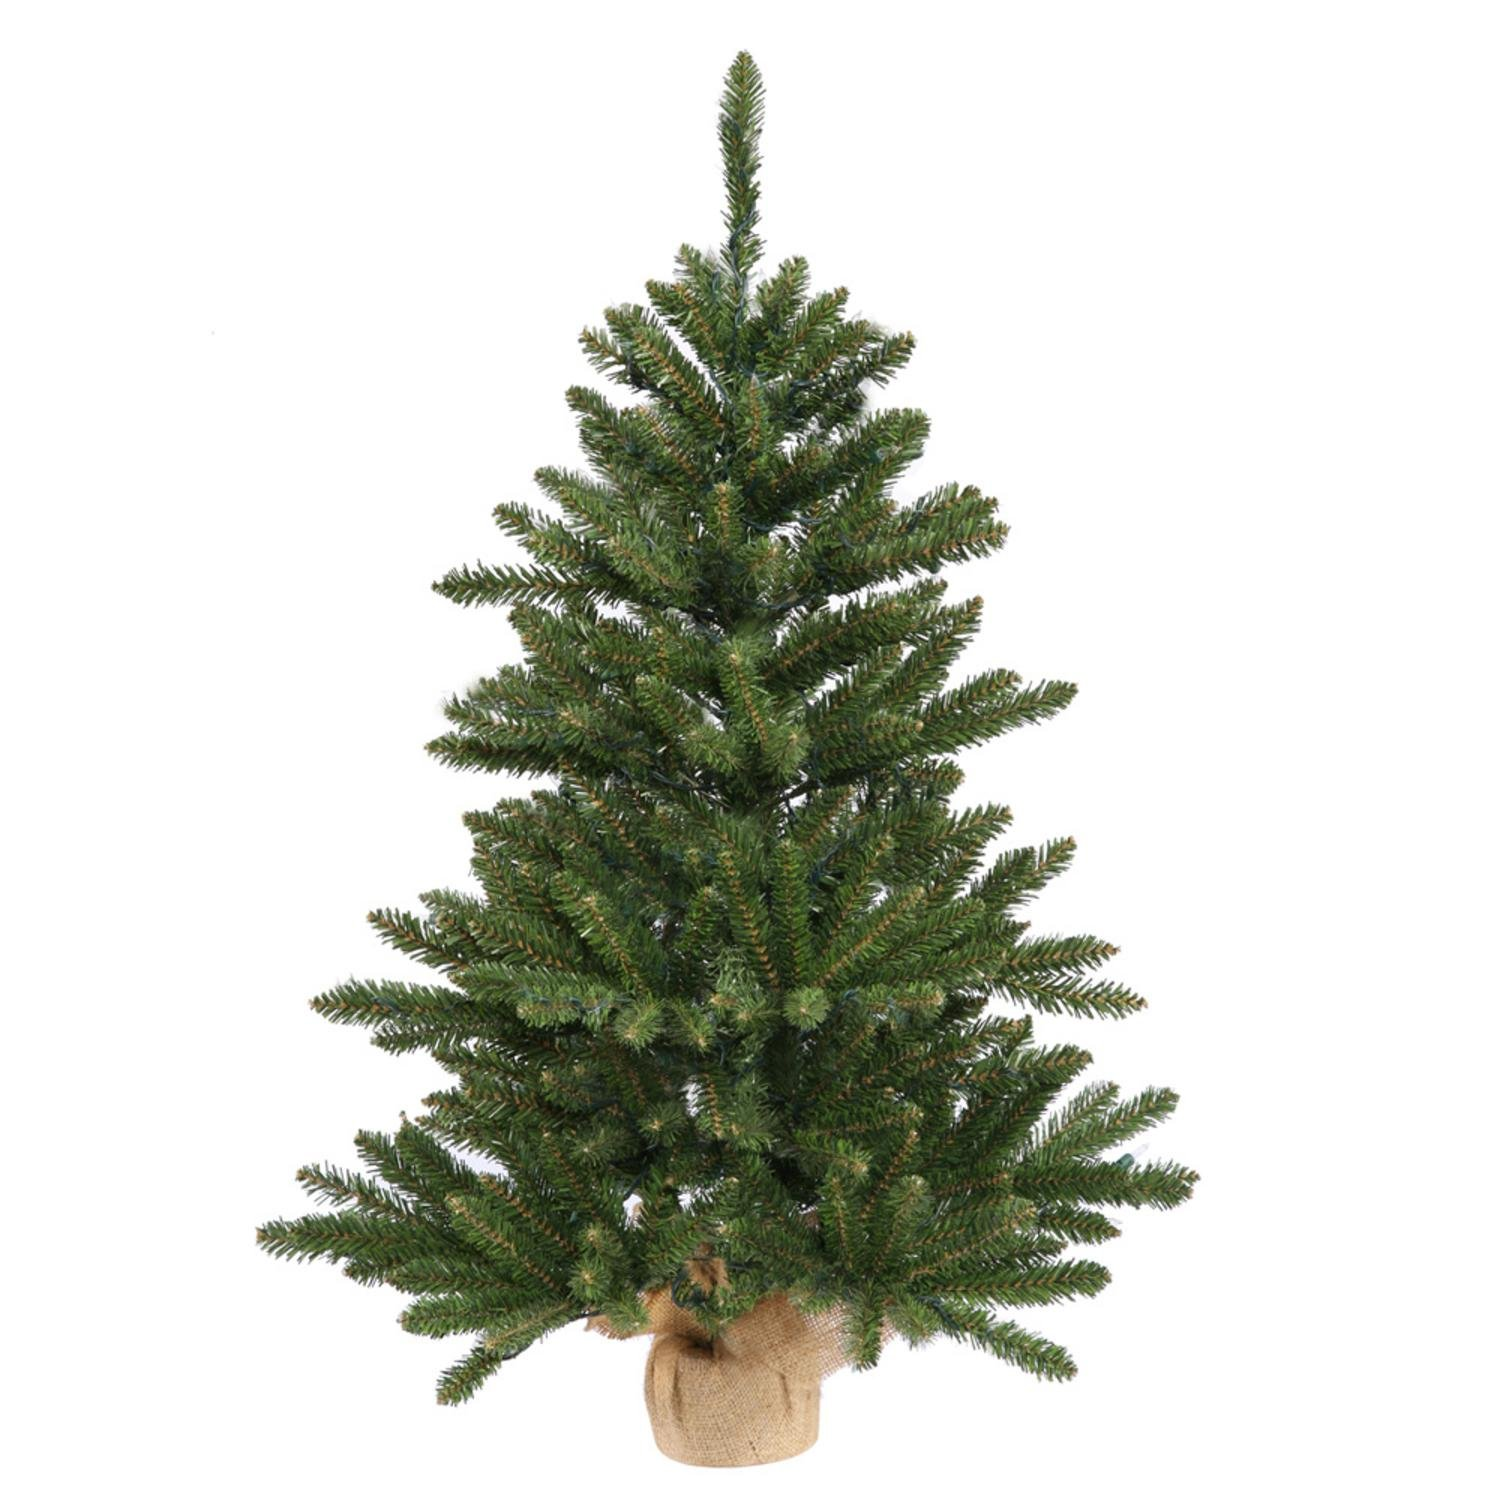 Vickerman 3' x 20'' Anoka Pine Artificial Christmas Tree in Burlap Base - Unlit